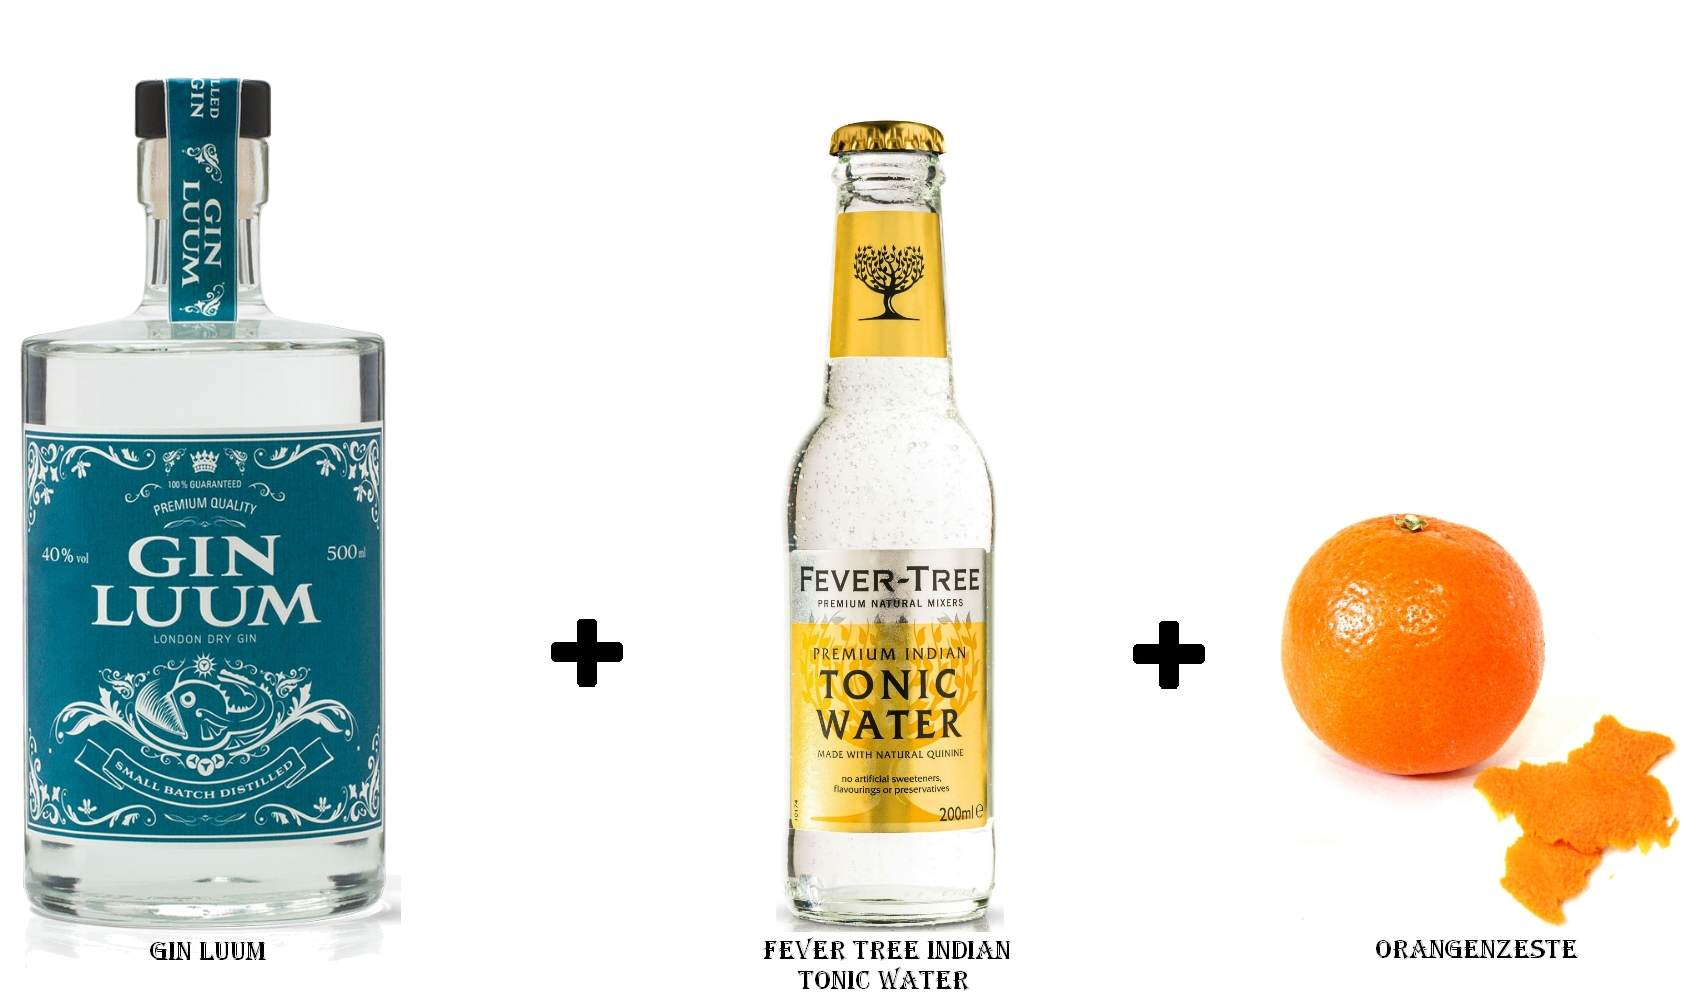 Gin Luum + Fever Tree Indian Tonic Water + Orangenzeste